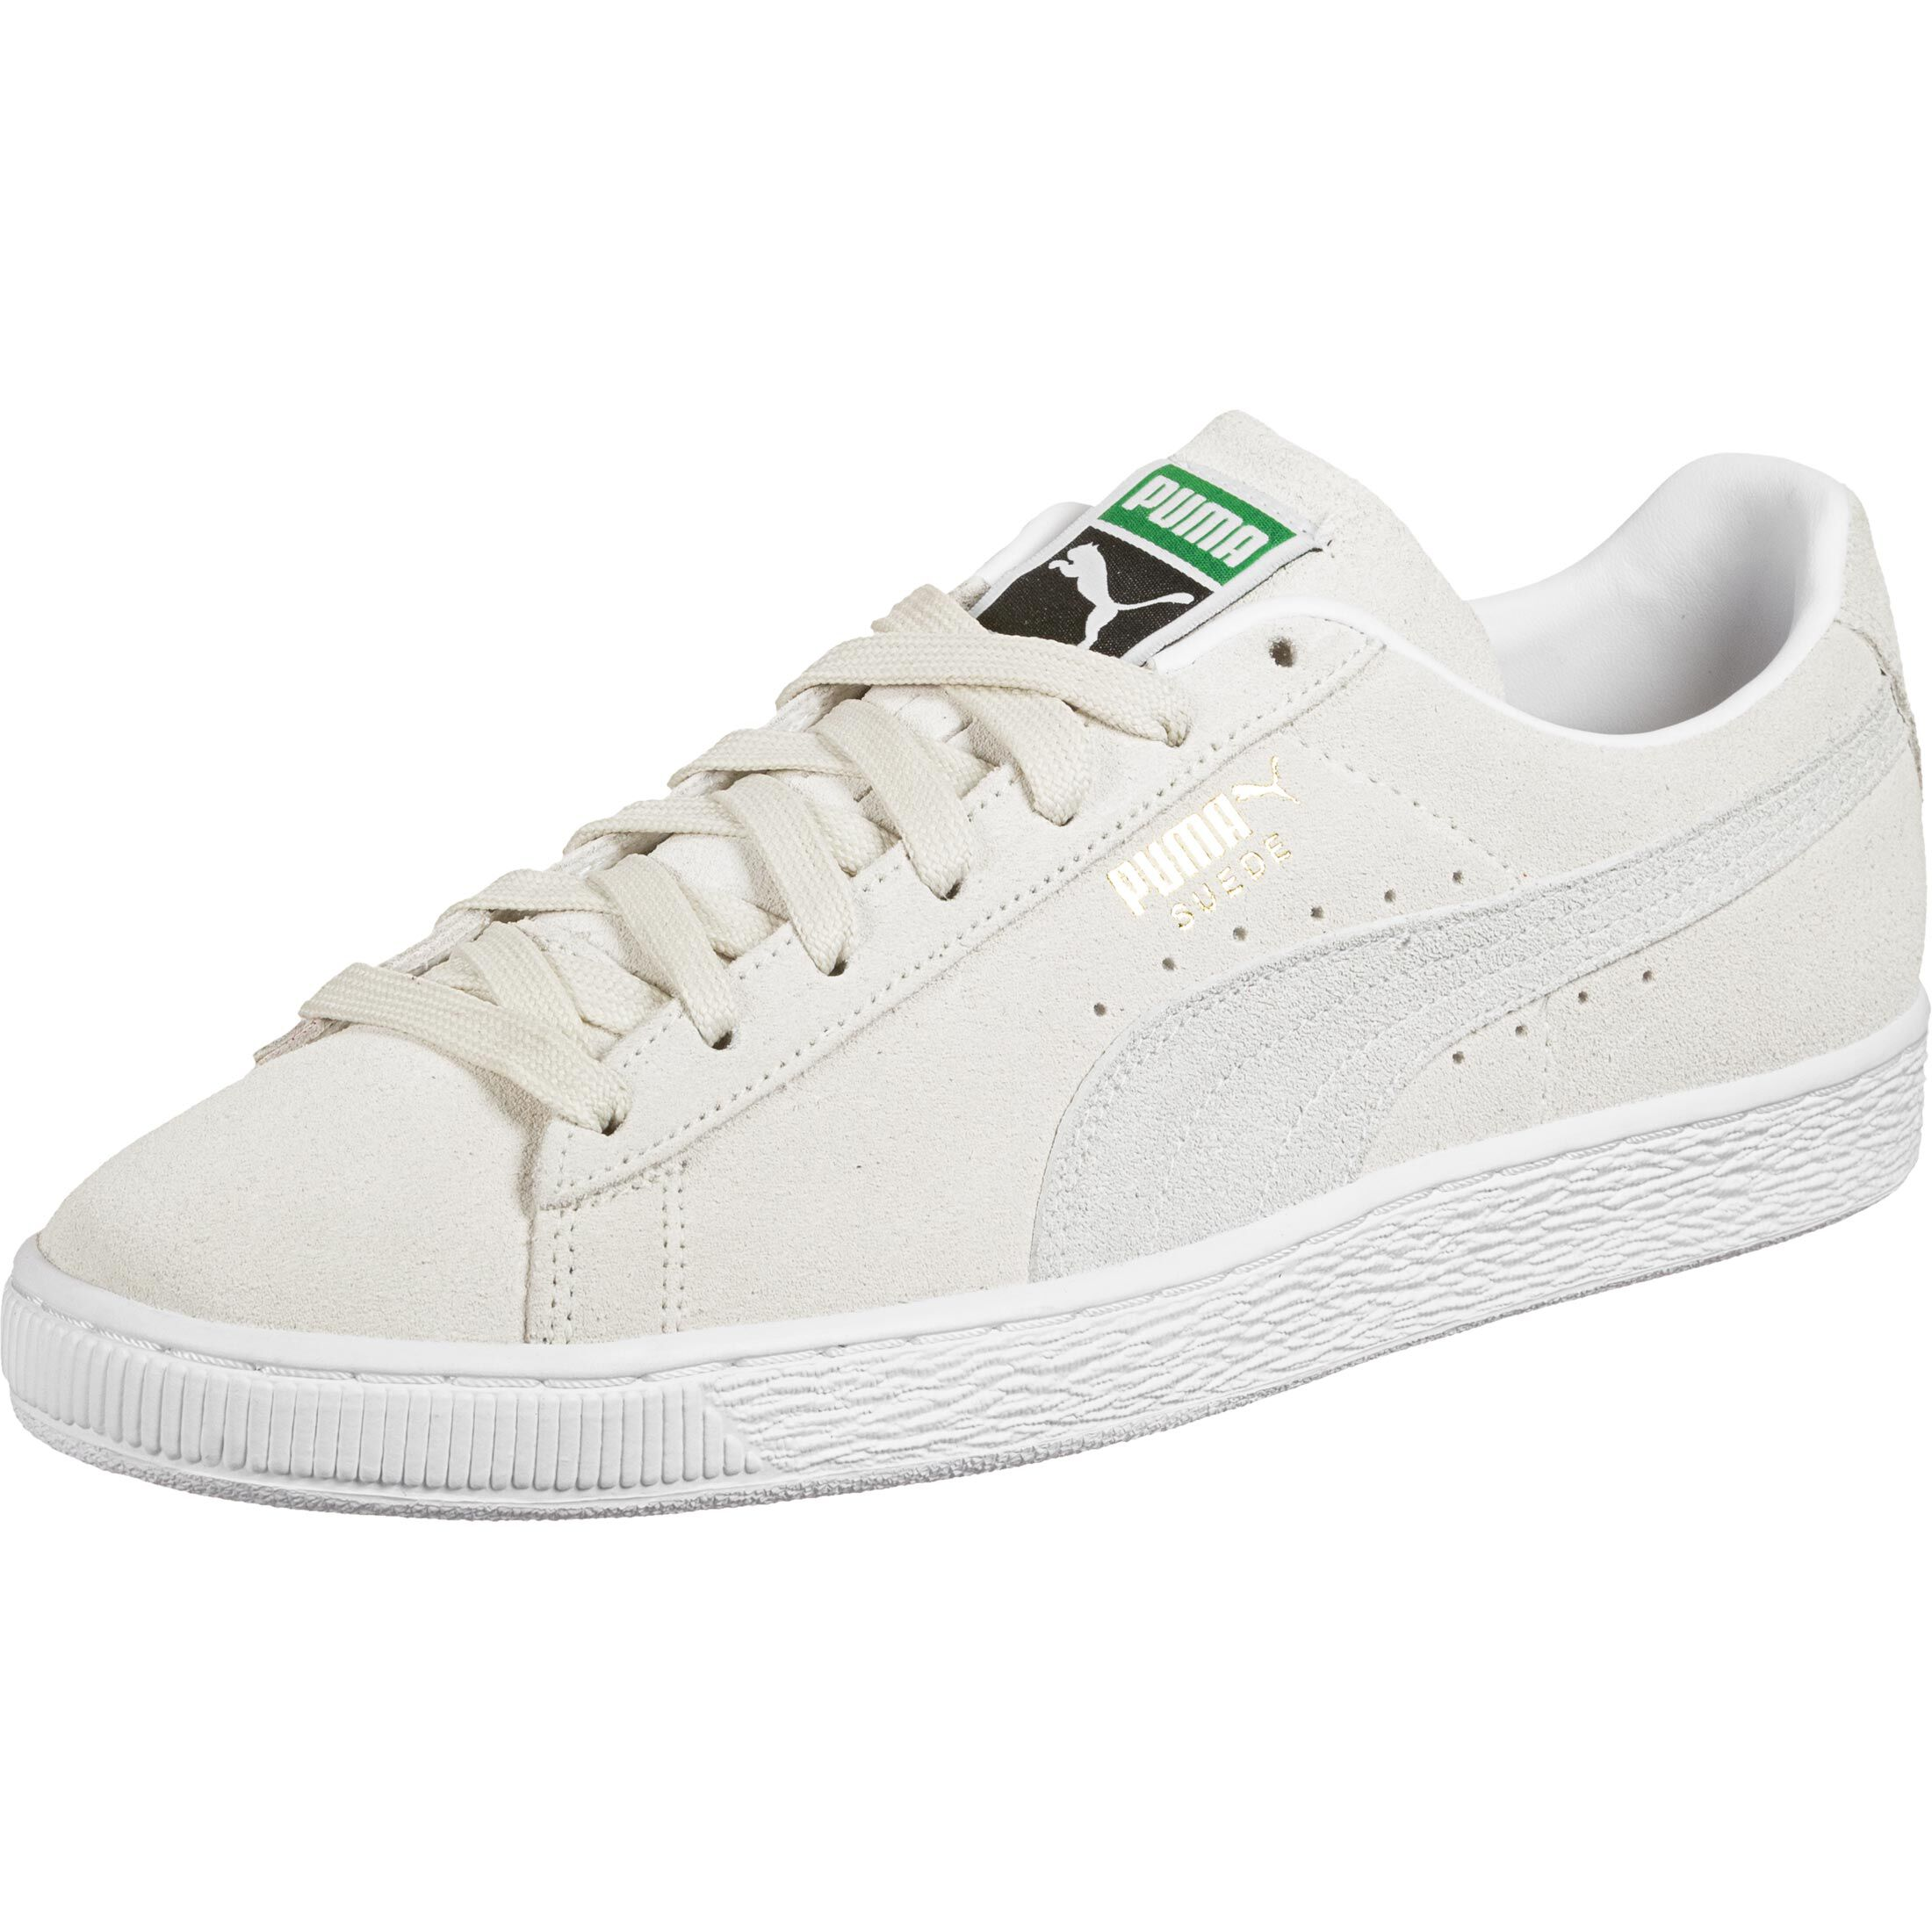 Puma Suede Classic XXI - Sneakers Low at Stylefile